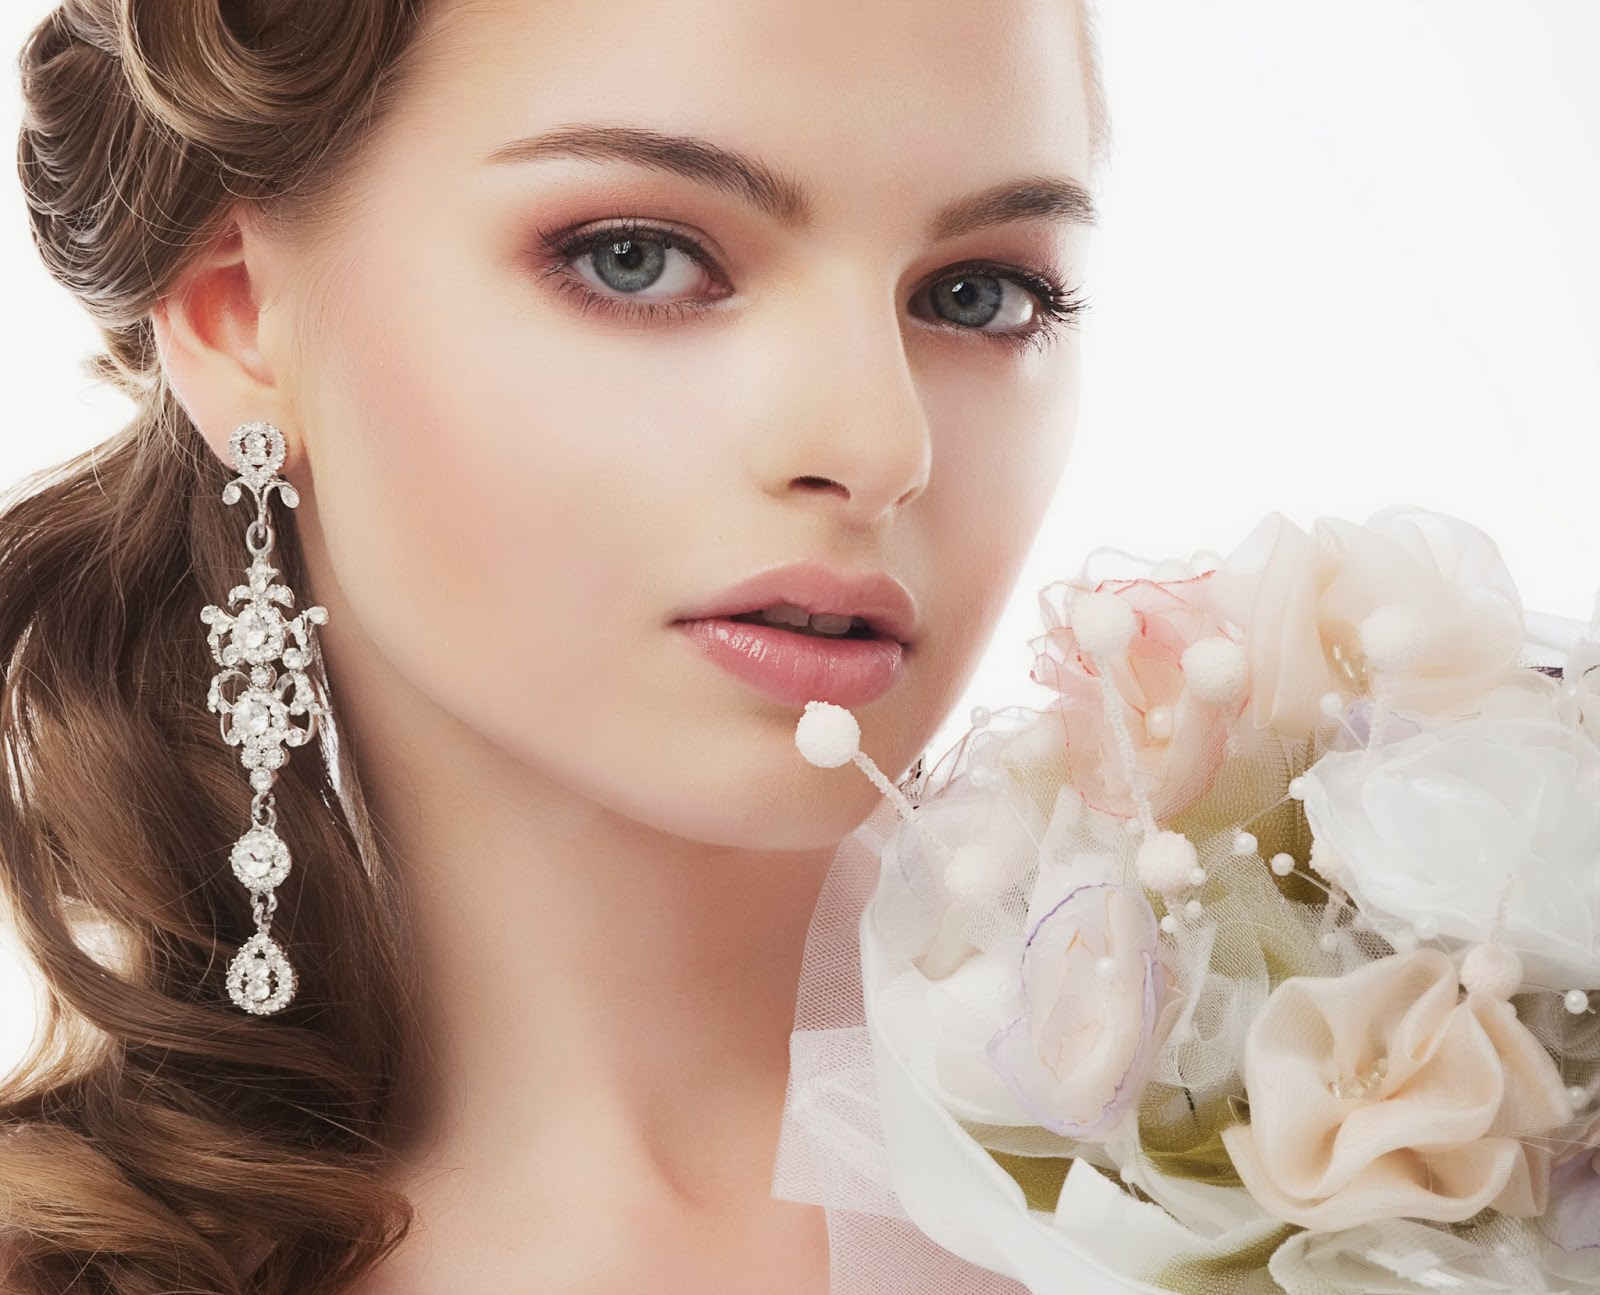 Best Bridal Makeup : Memorable Wedding: The Best Wedding Makeup Tips